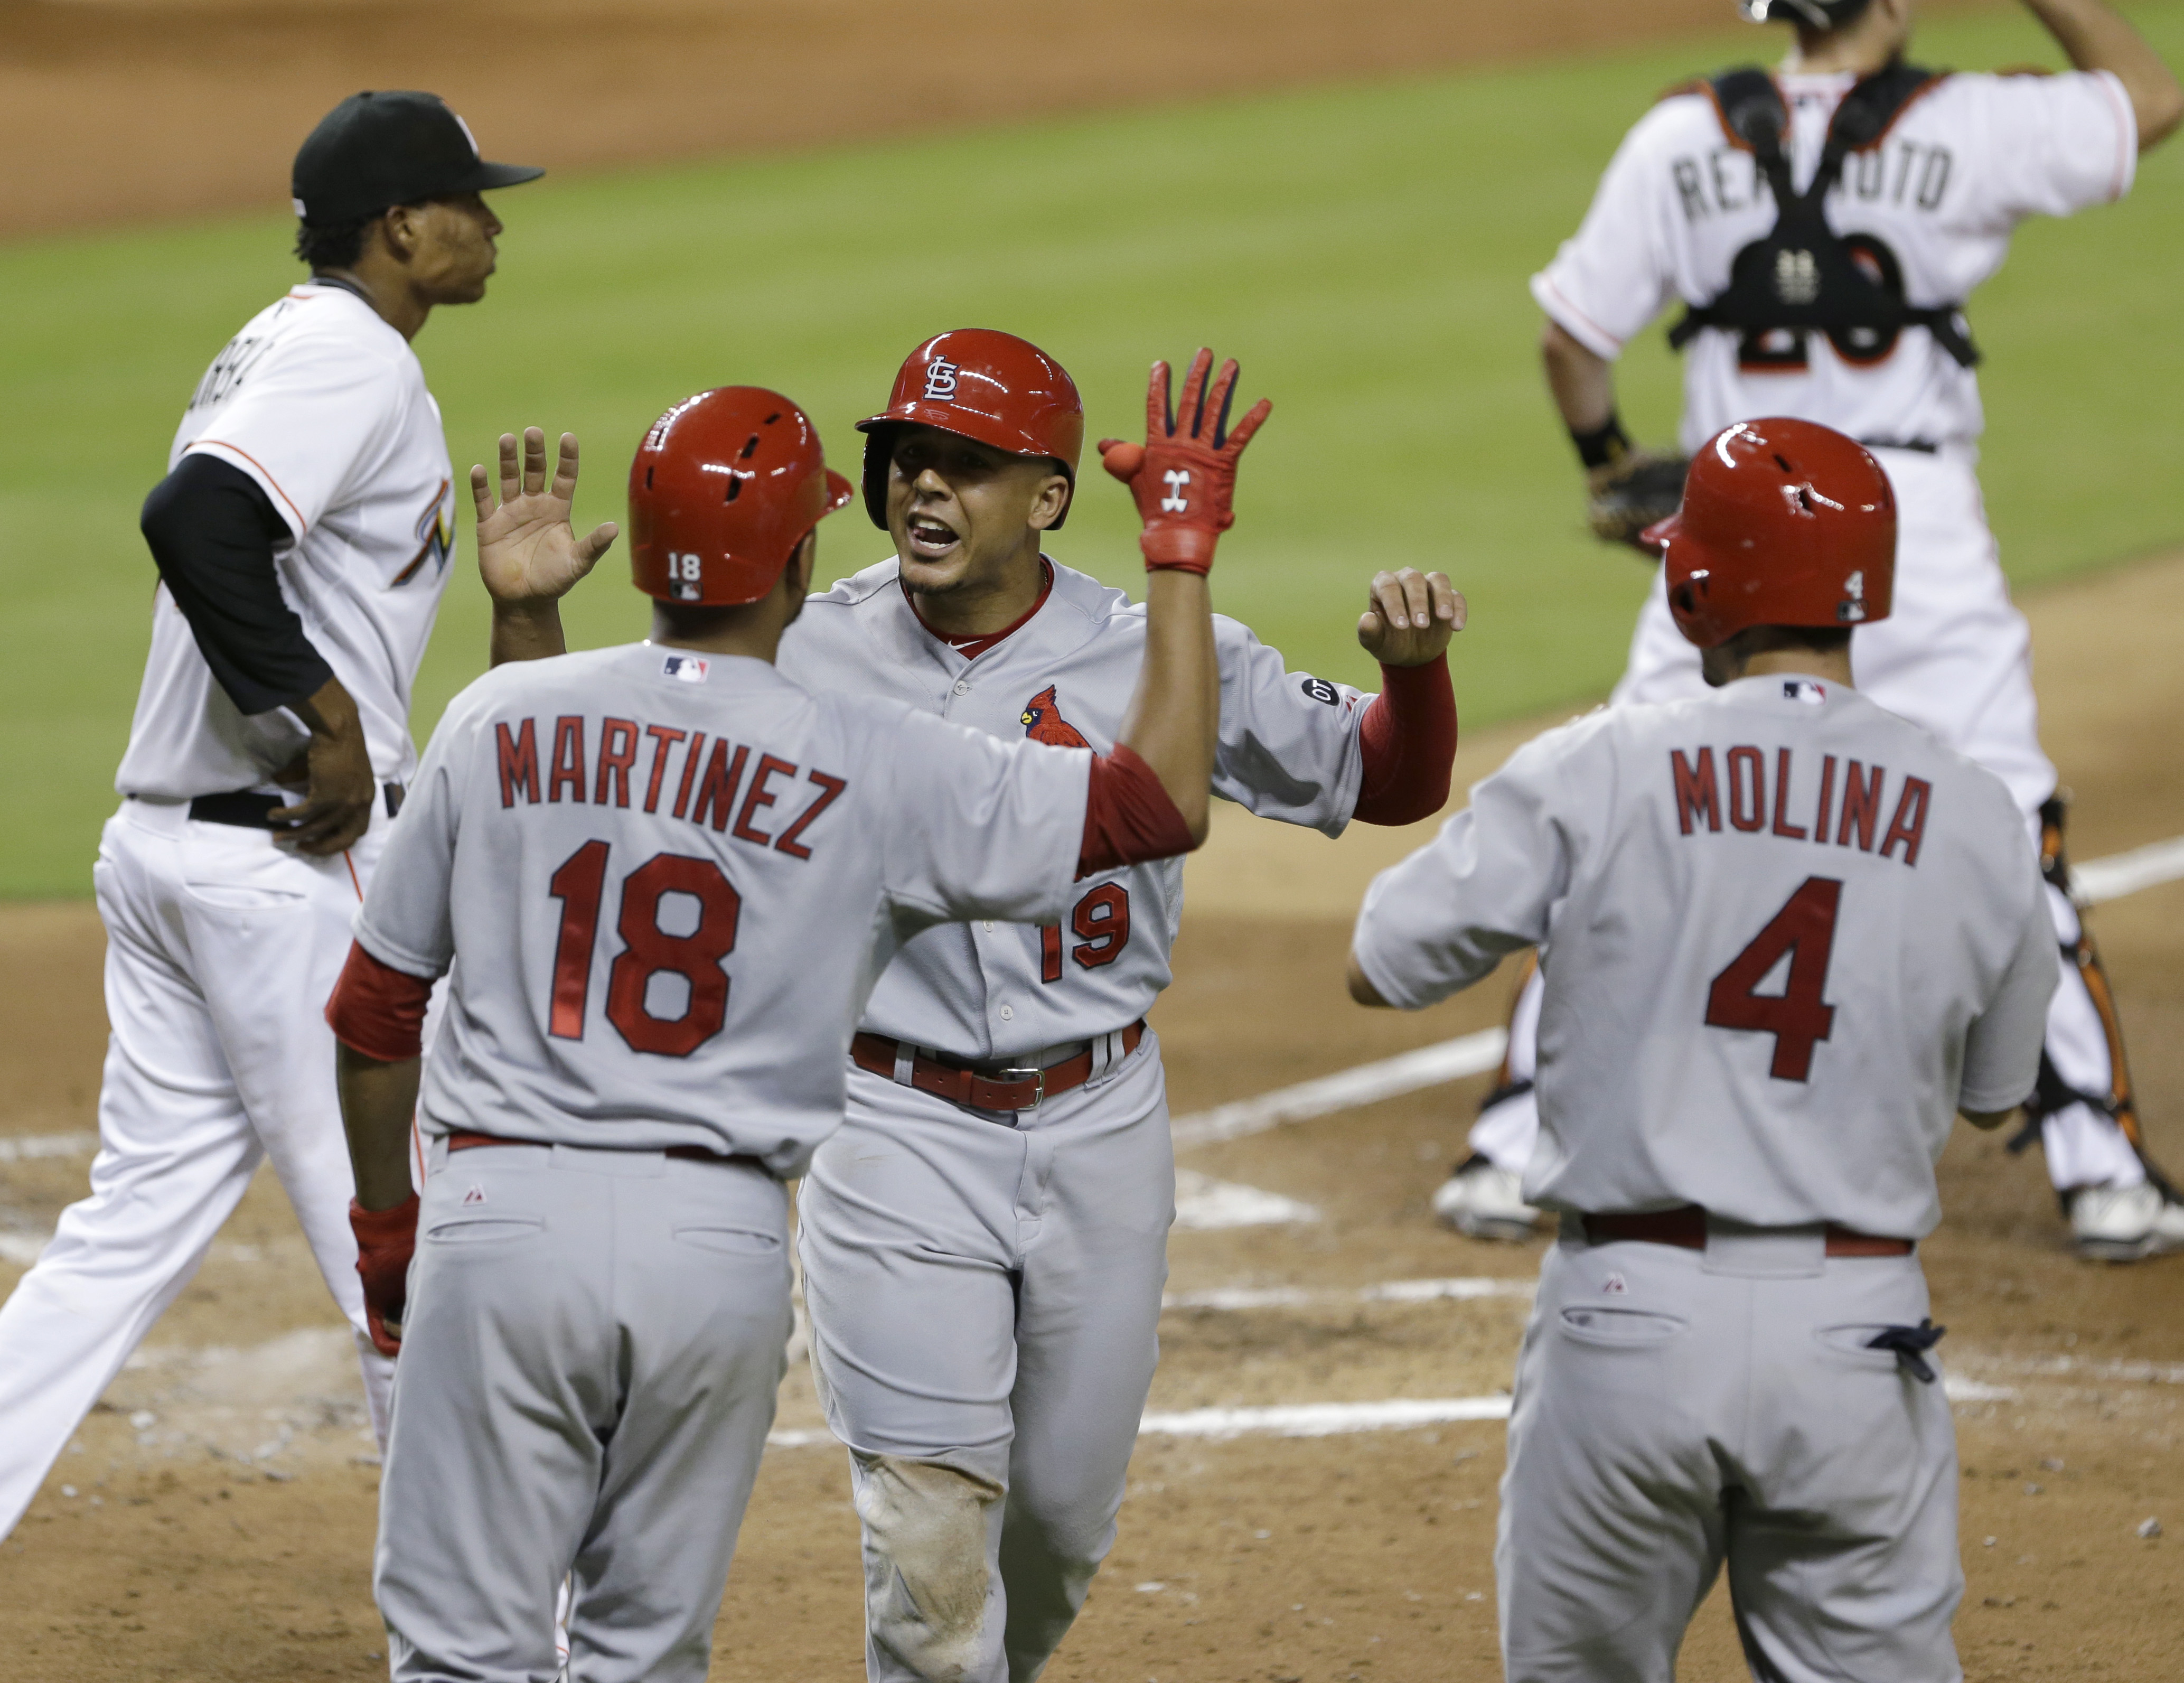 St. Louis Cardinals' Jon Jay (19) celebrates with Carlos Martinez (18) and Yadier Molina (4) after Martinez and Molina scored on a double by Xavier Scruggs during the fourth inning of a baseball game against the Miami Marlins, Tuesday, June 23, 2015, in M